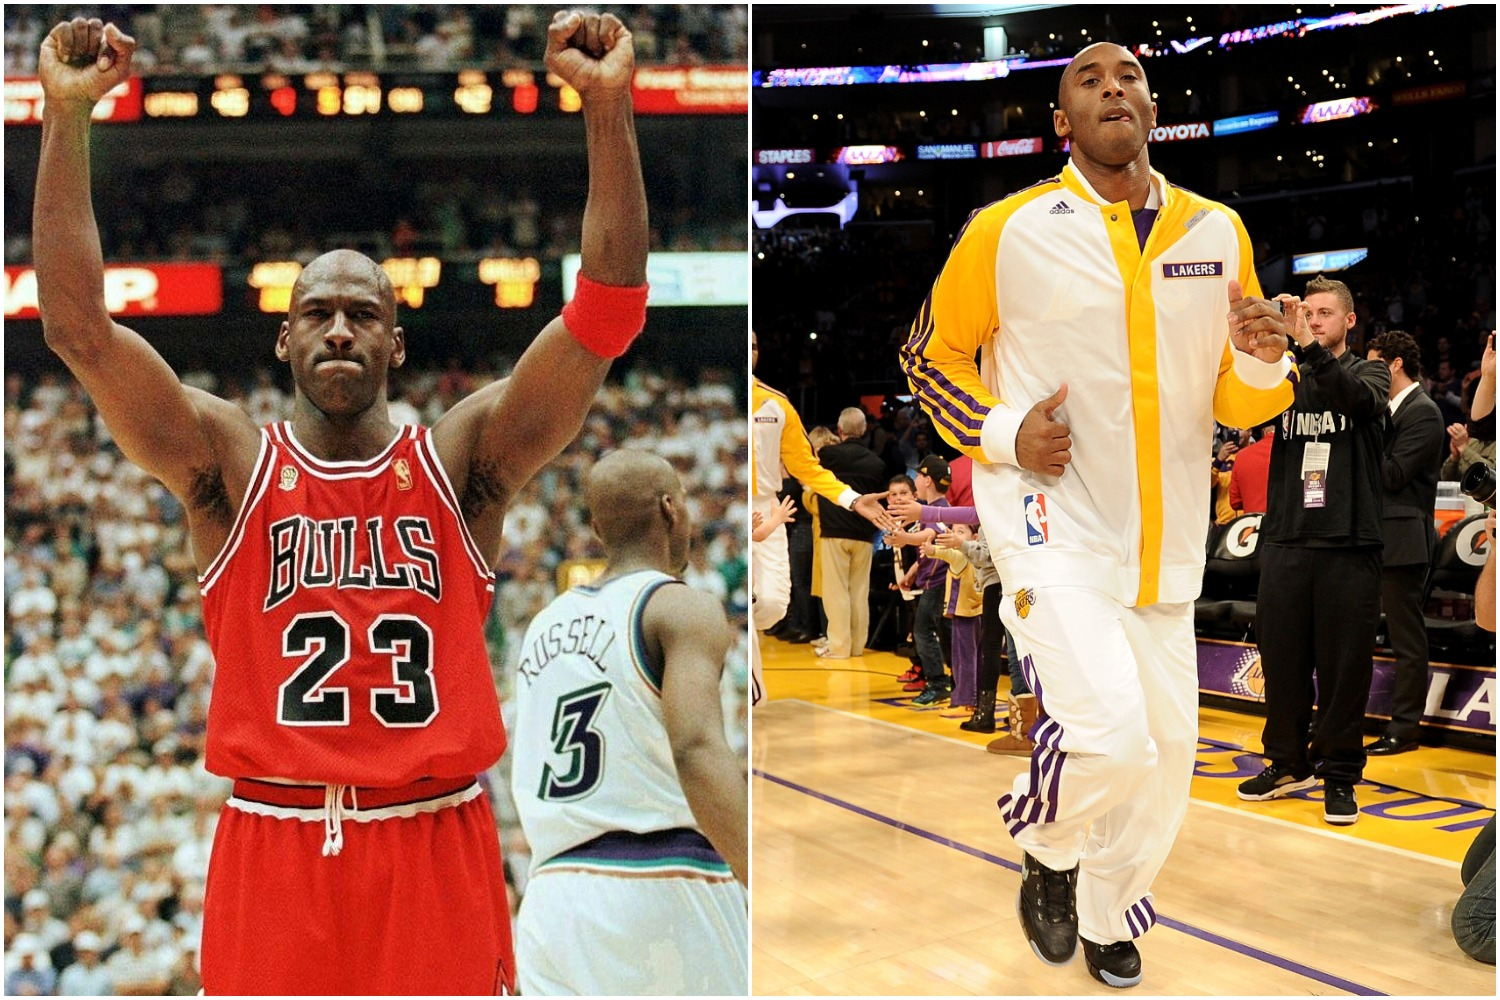 Michael Jordan raises both arms in the air after winning a game with the Chicago Bulls as Kobe Bryant jogs onto the court during a 2013 game with the Lakers.